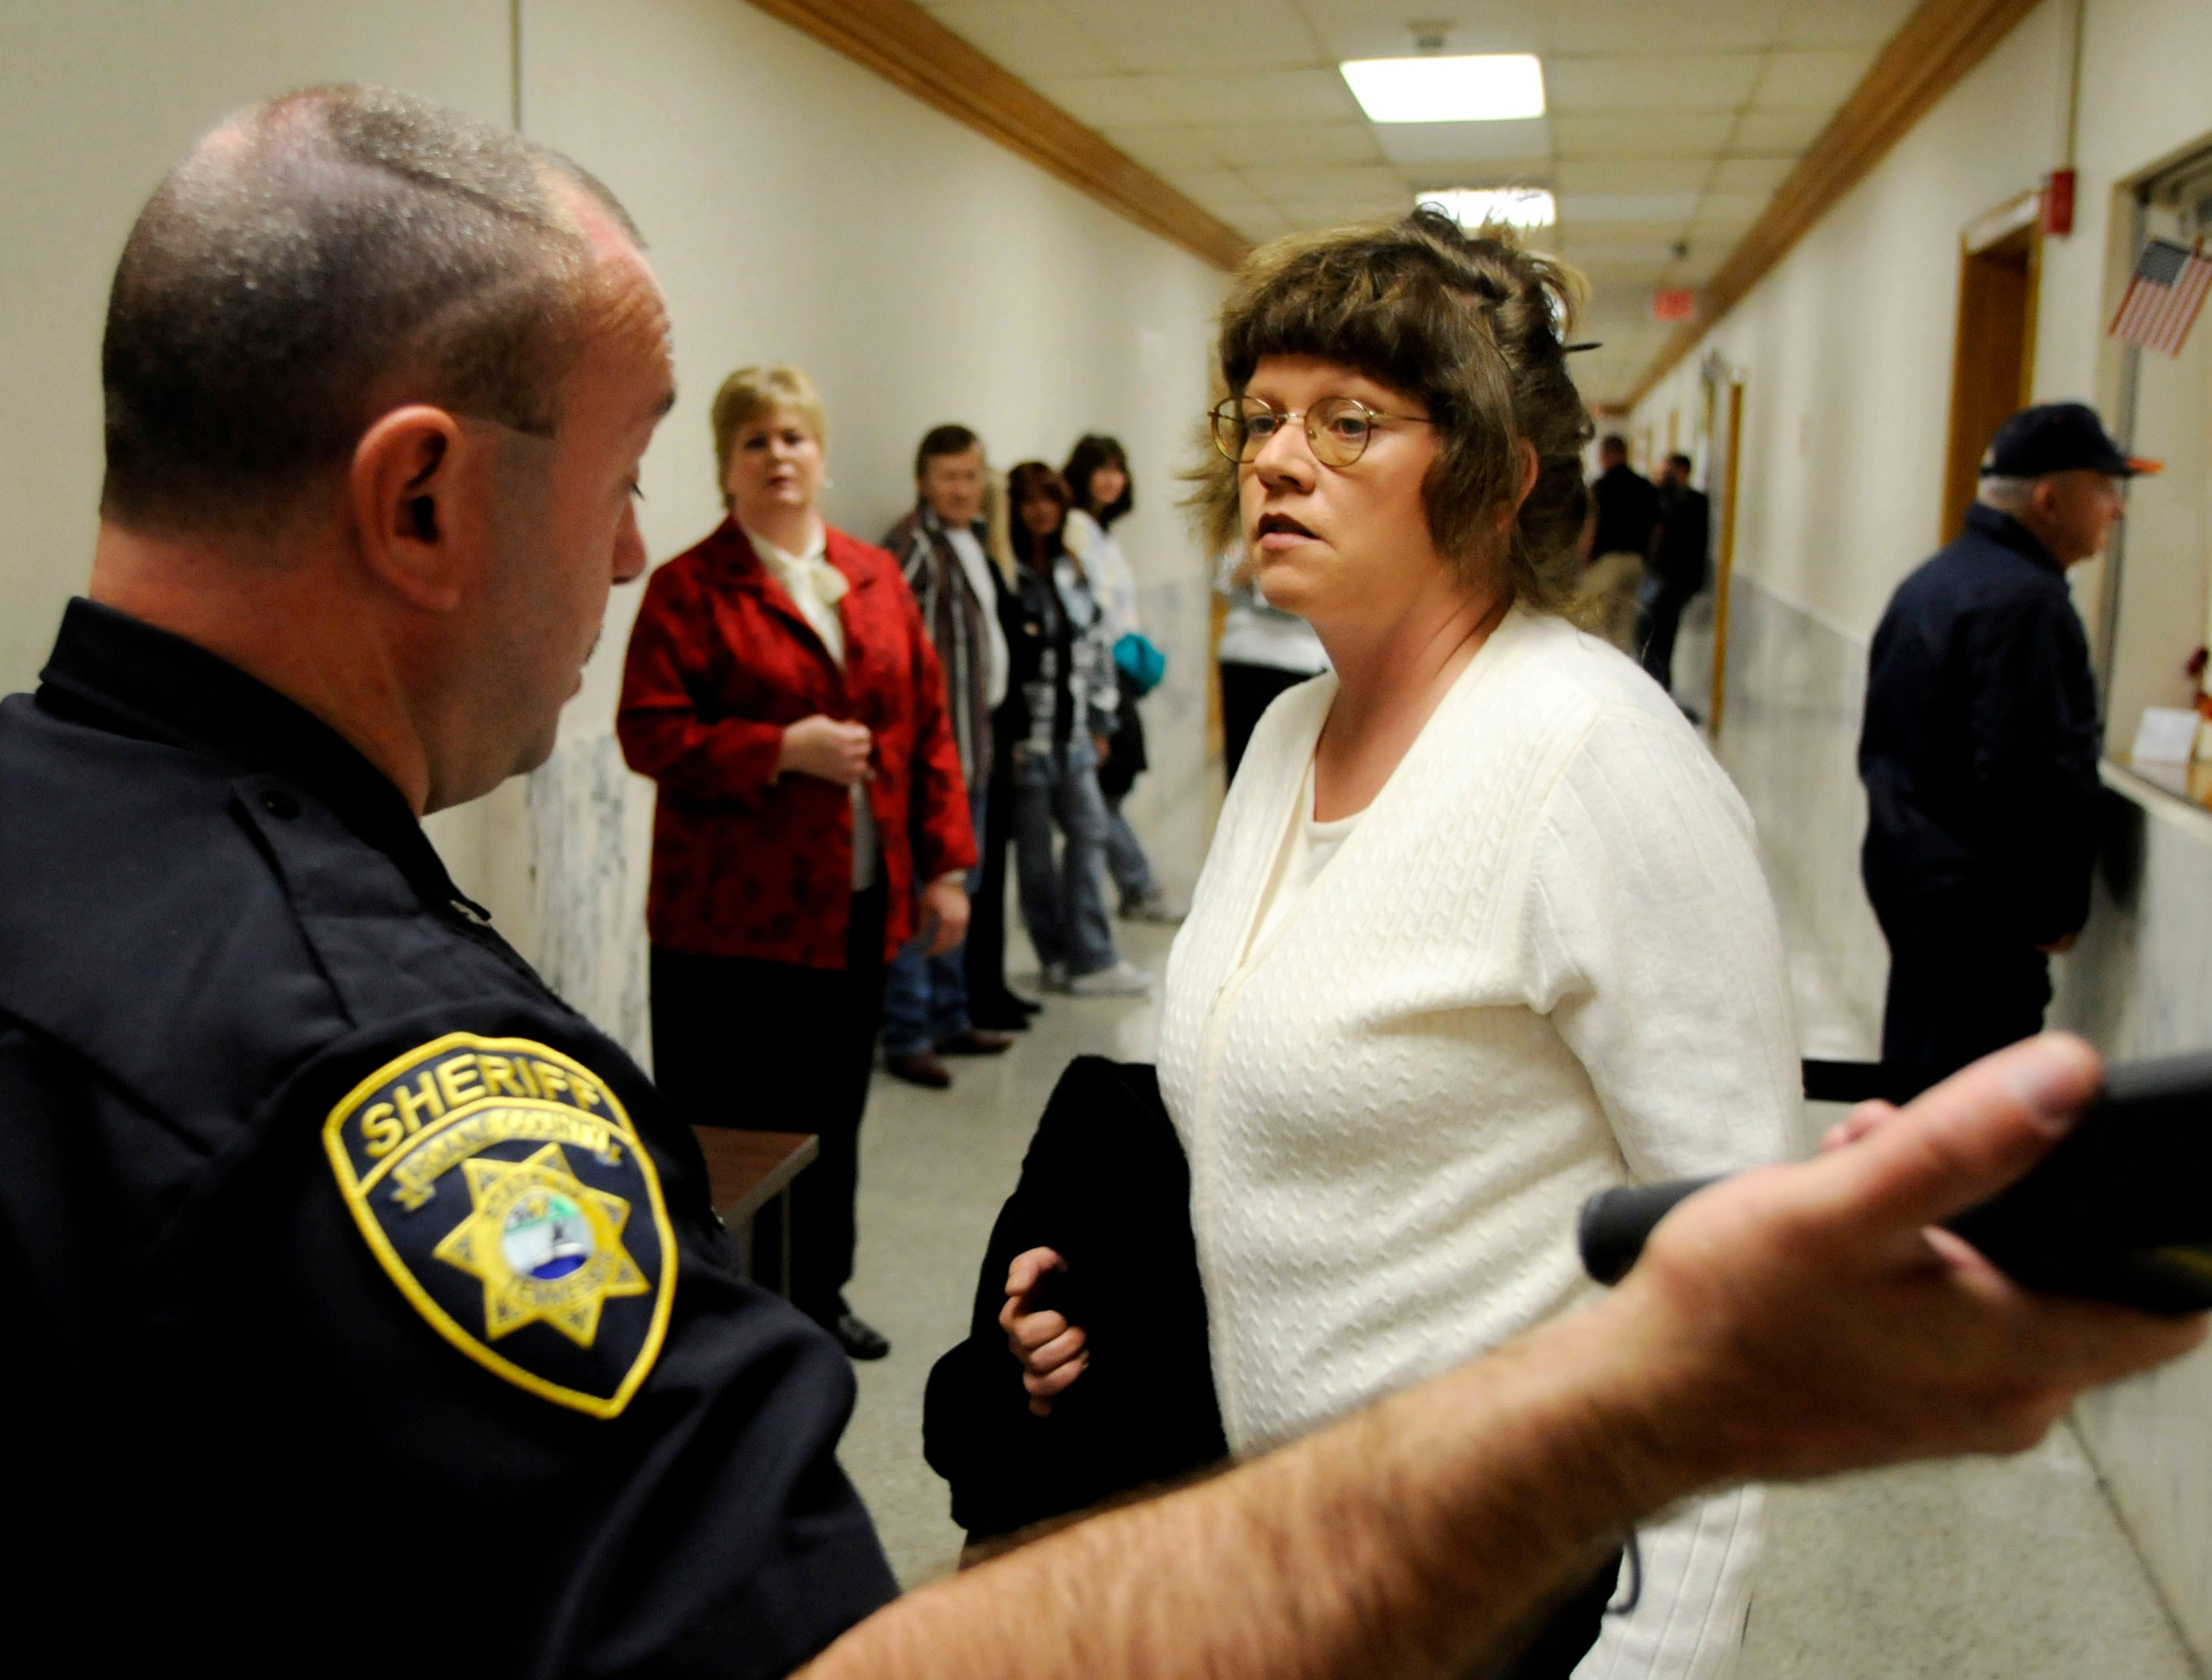 Rocky Houston's sister, Debbie Cofer, is questioned at the security checkpoint if she is a witness. Potential witnesses, like Houston's wife, Nancy Houston, center in red coat, were not allowed to watch jury selection. Monday, November 10, 2008